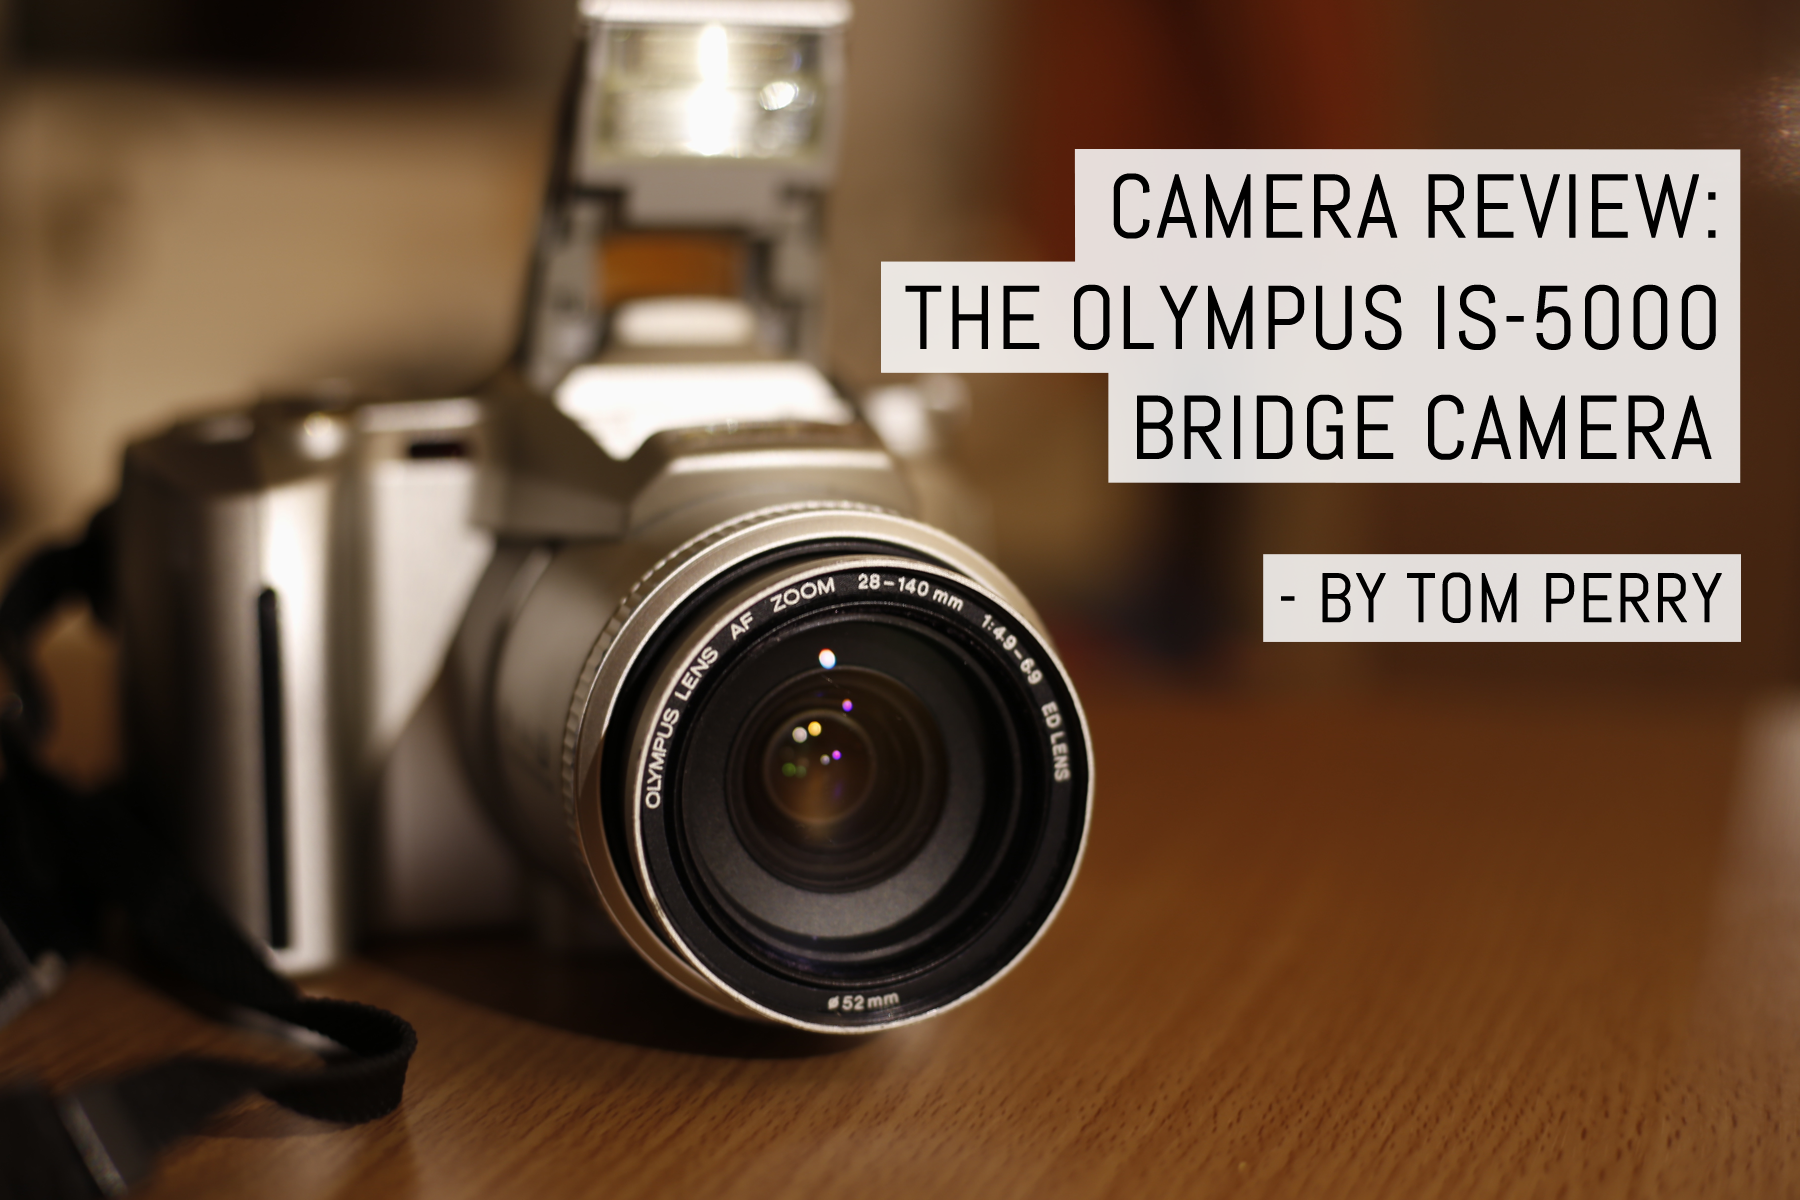 Cover - Camera review- the Olympus IS-5000 bridge camera - by Tom Perry